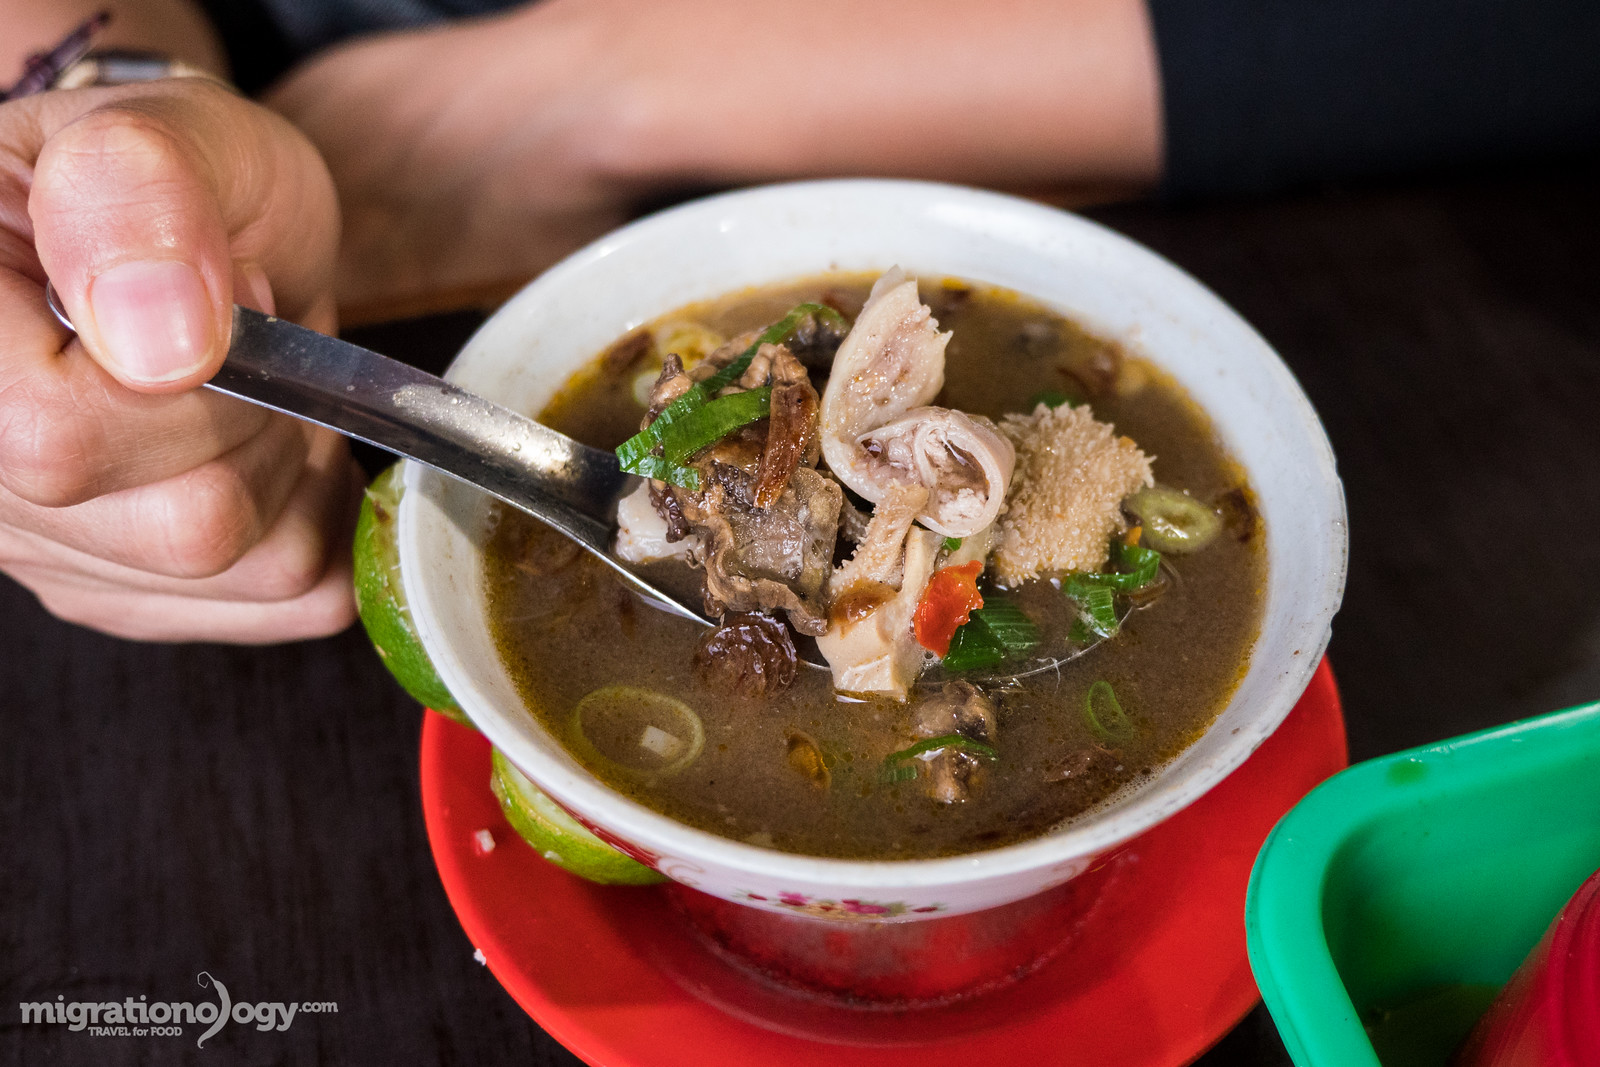 Indonesian Food 50 Of The Best Dishes You Should Eat Old Town Coffe 2 In1 Isi 15 Coto Makassar